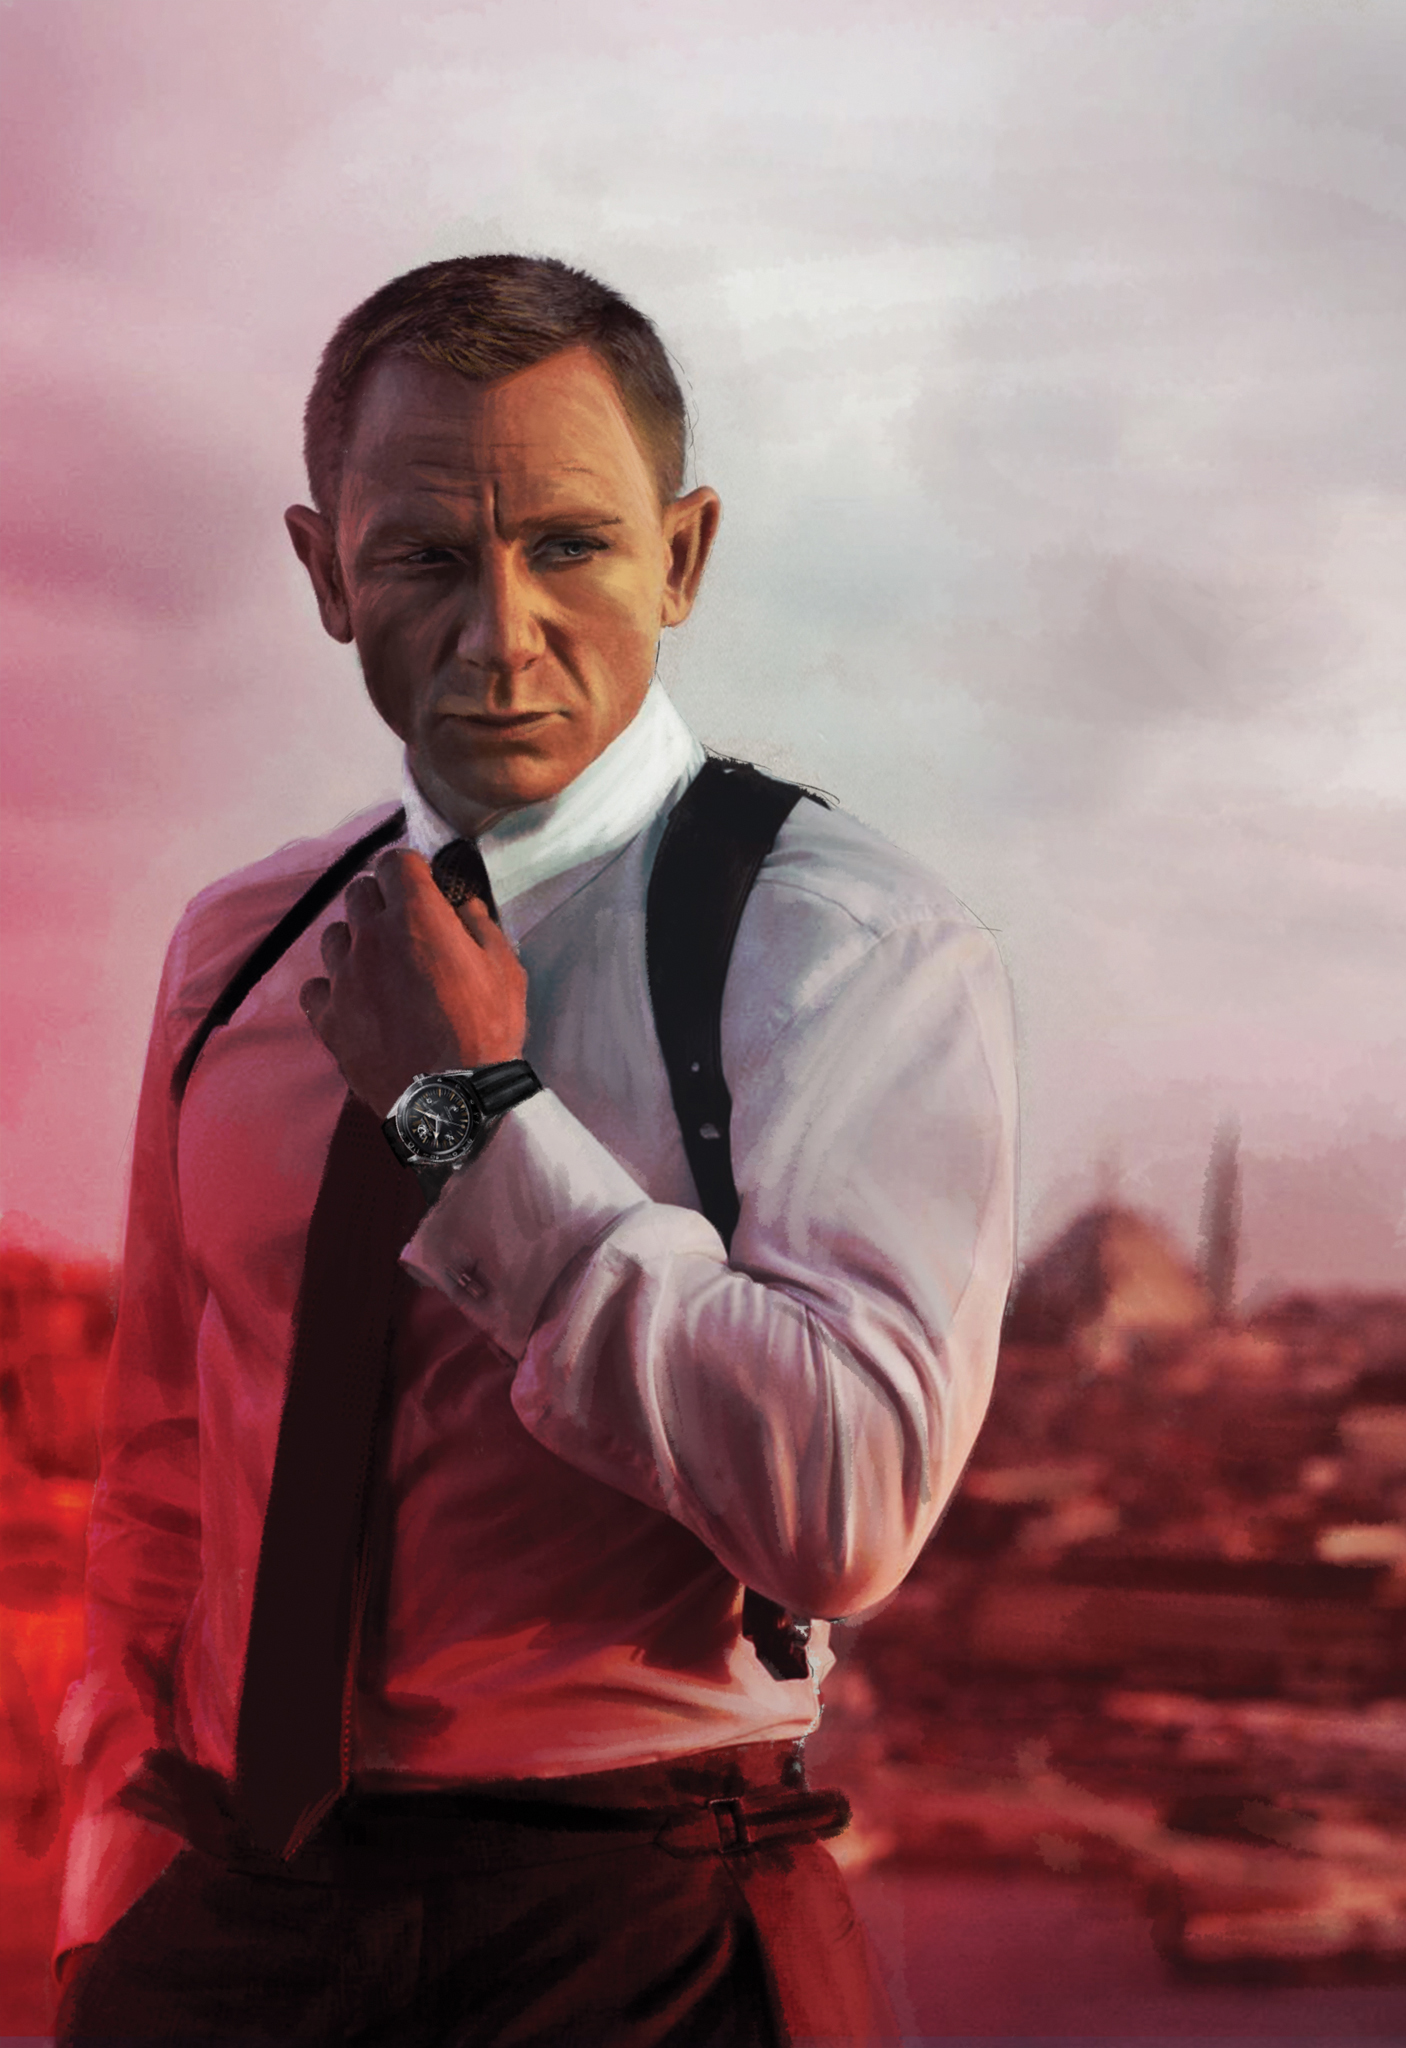 james-bond-watches01.jpg